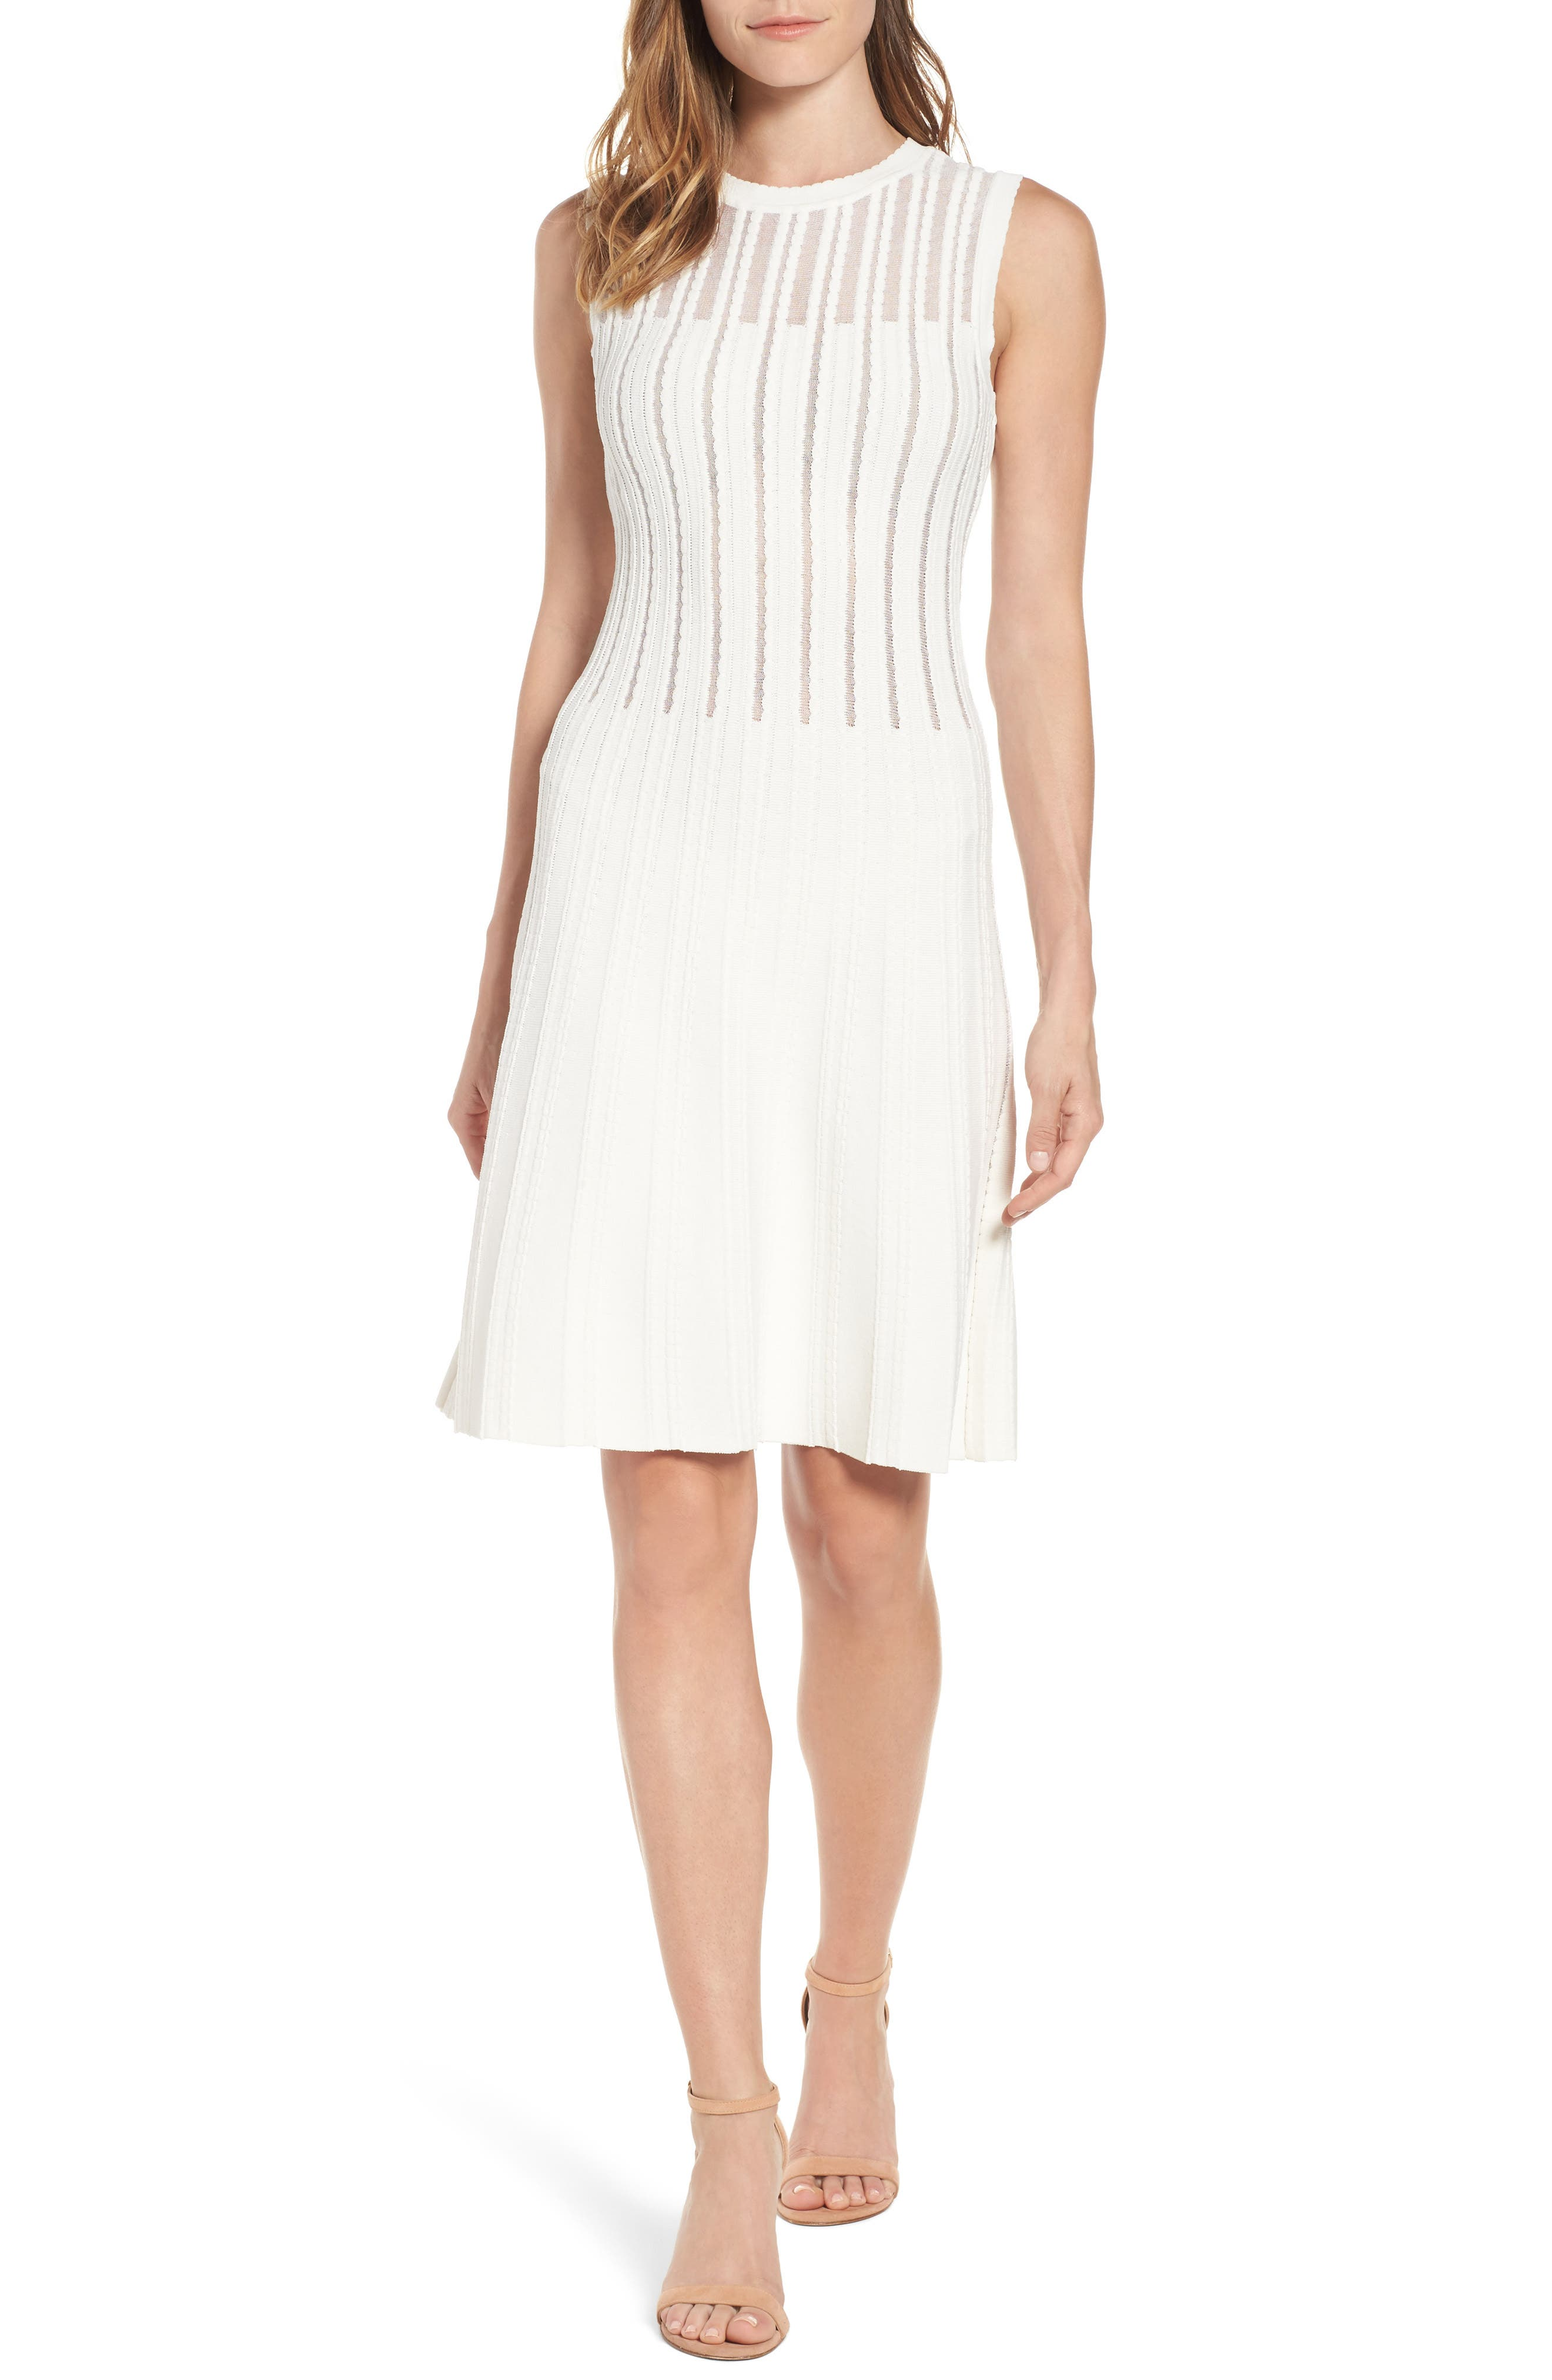 Alternate Image 1 Selected - Anne Klein Knit A-Line Dress